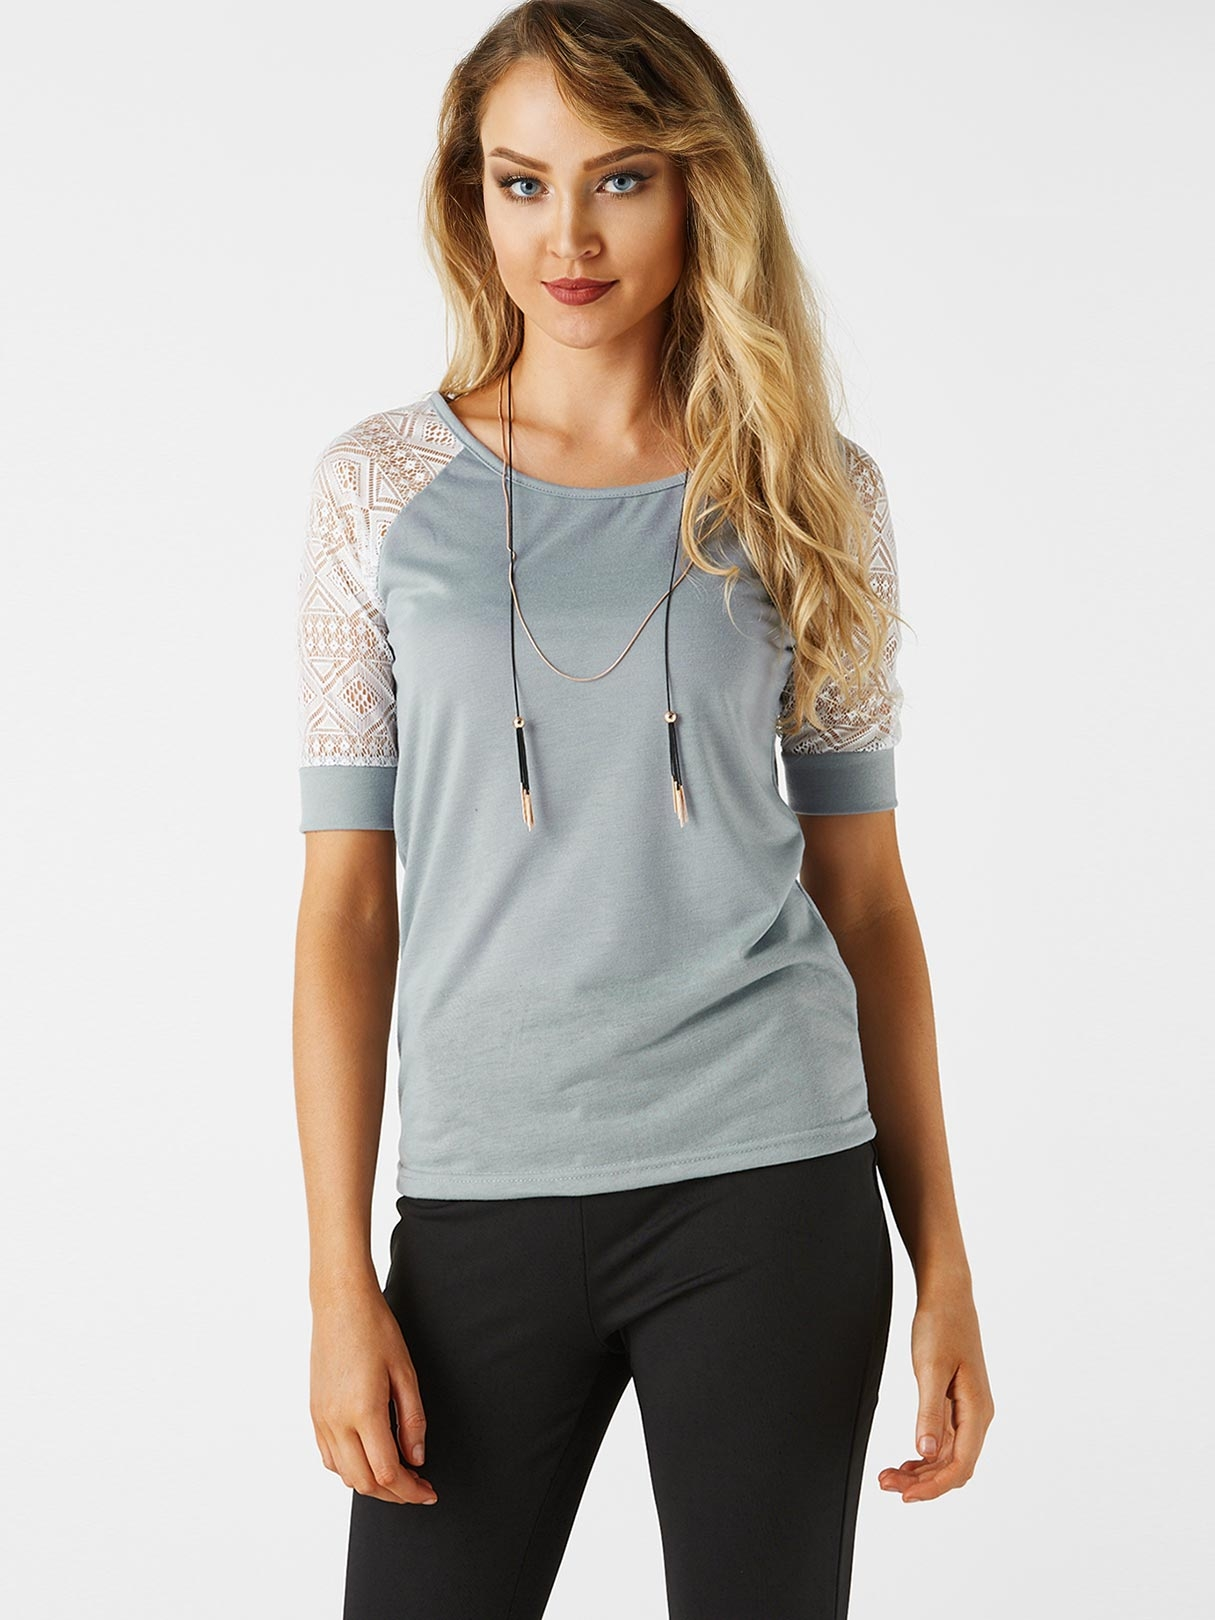 Grey Lace Details Round Neck Short Sleeves T-shirts grey lace details stripe round neck cami